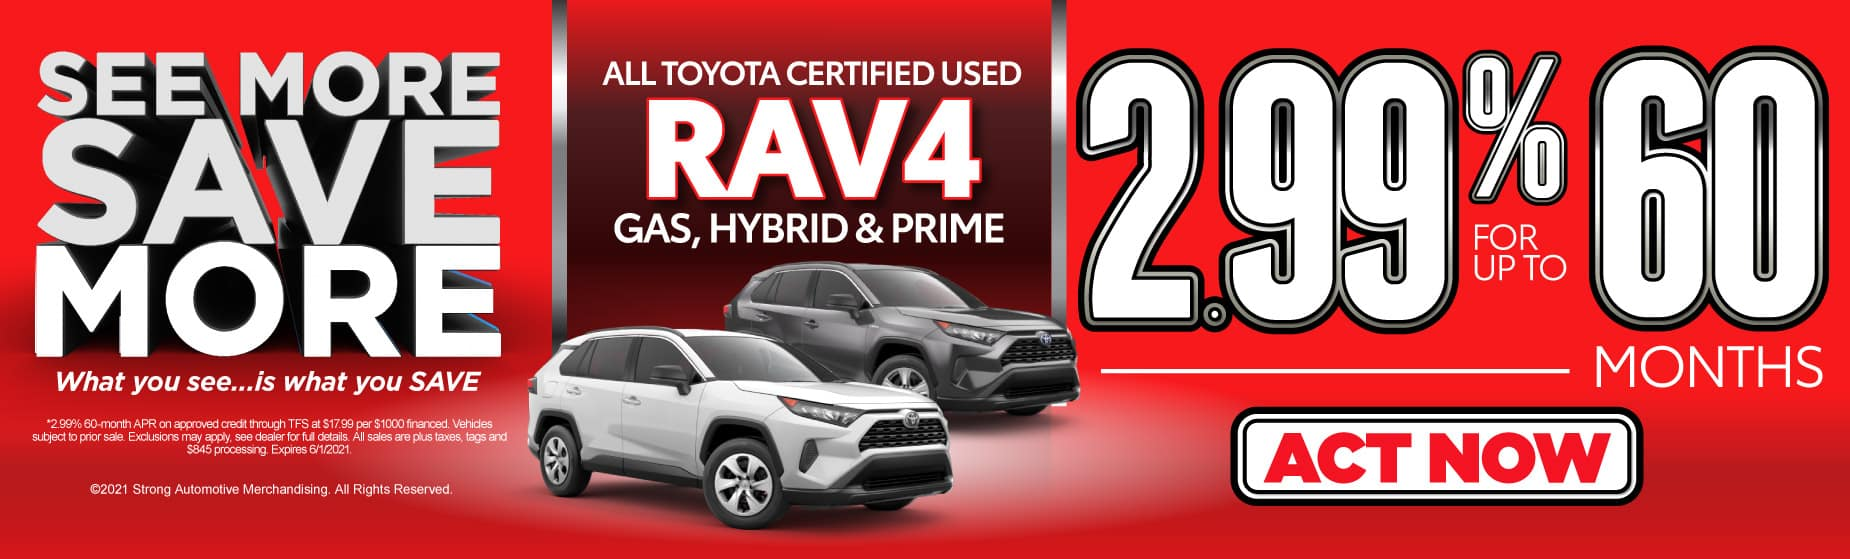 Certified Used RAV4 gas, hybrid, and prime | 2.99% for up to 60 months | Act Now